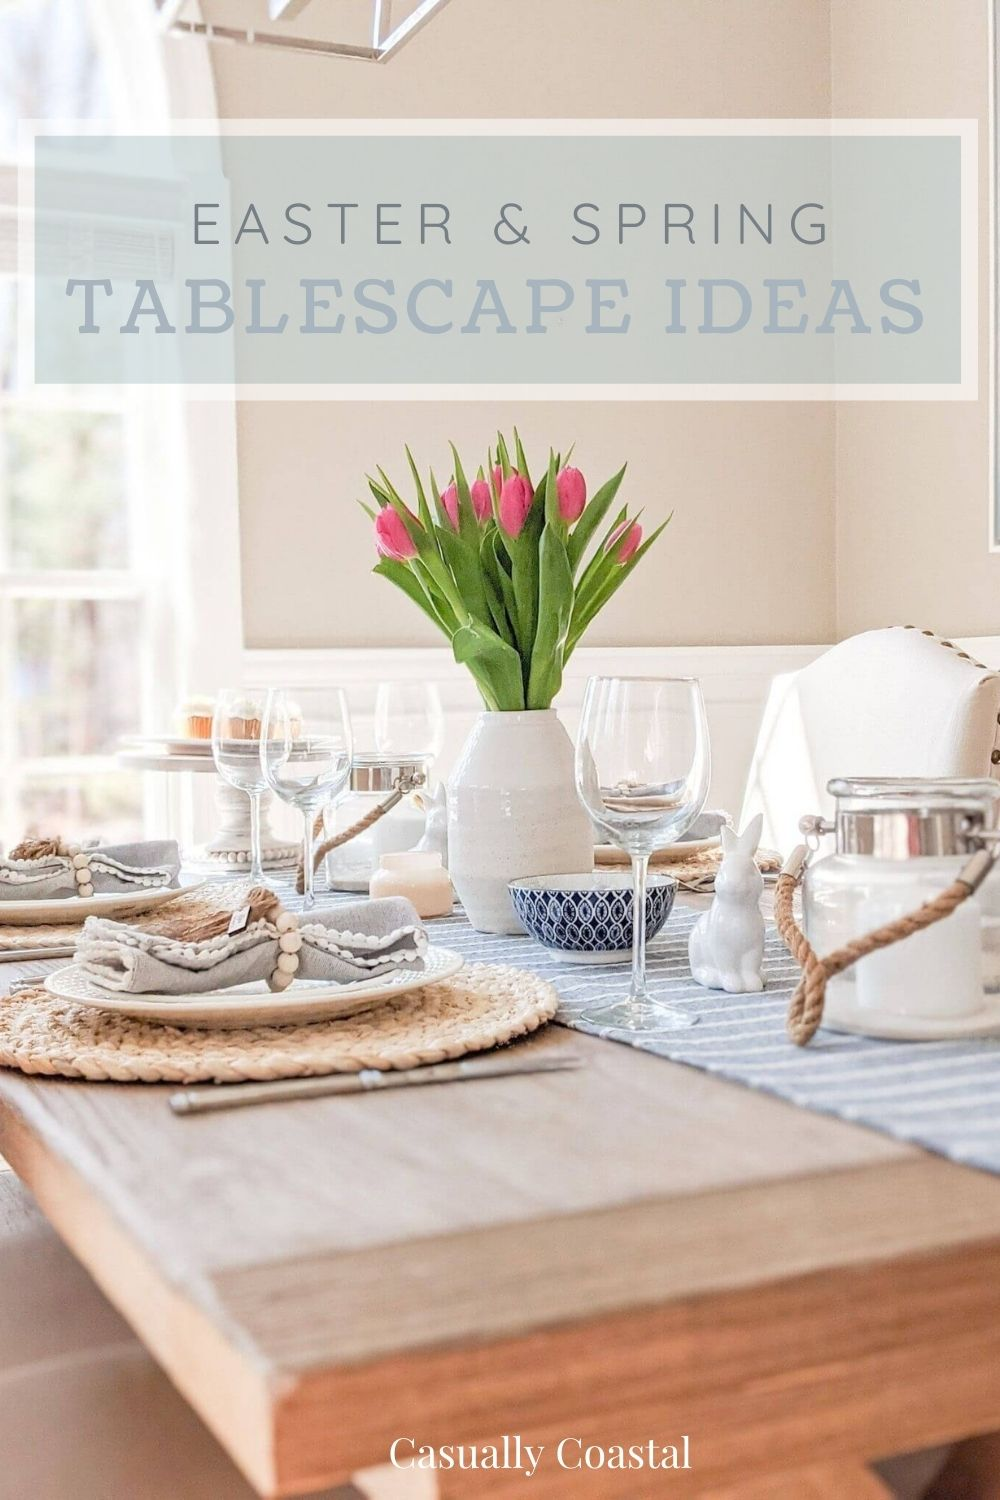 Easter & Spring Tablescape Ideas